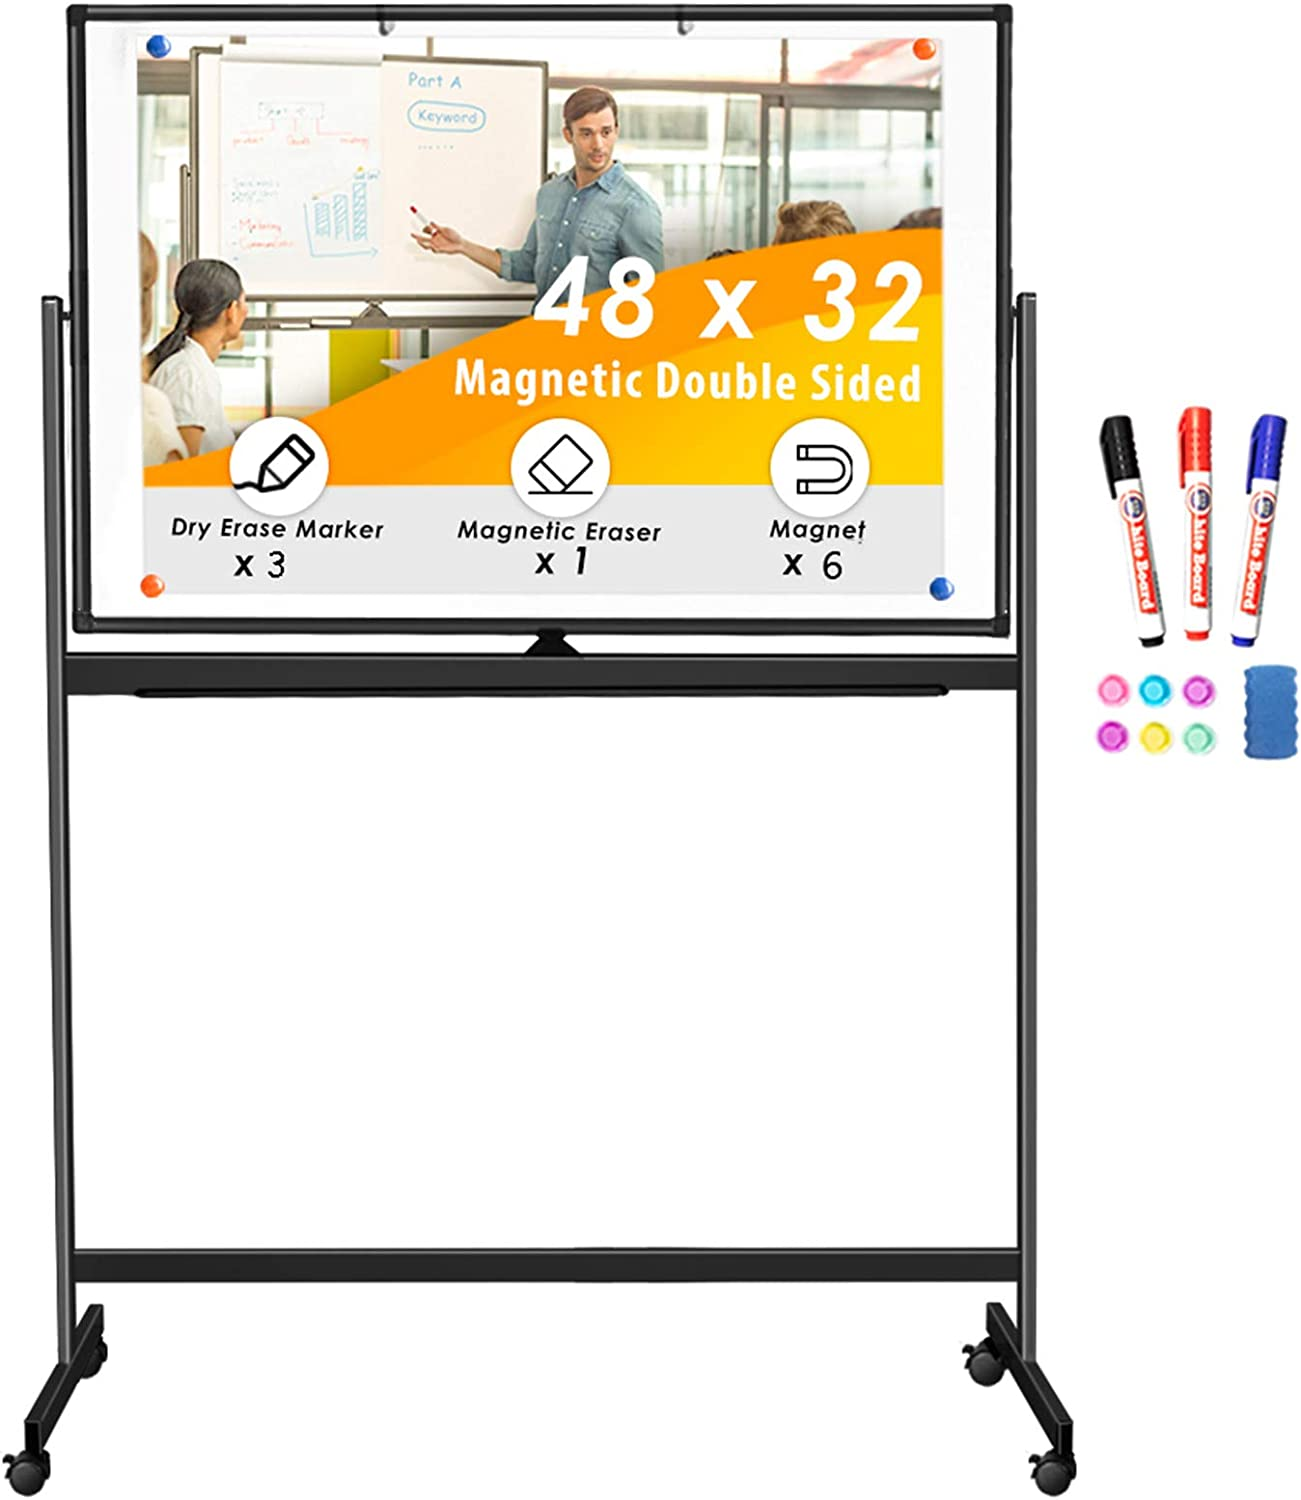 Double Sided Rolling Whiteboard, 48 x 32 inches Large Mobile Whiteboard Magnetic Movable White Board Dry Erase Stand Whiteboard on Wheels Classroom Home Office Marker Board